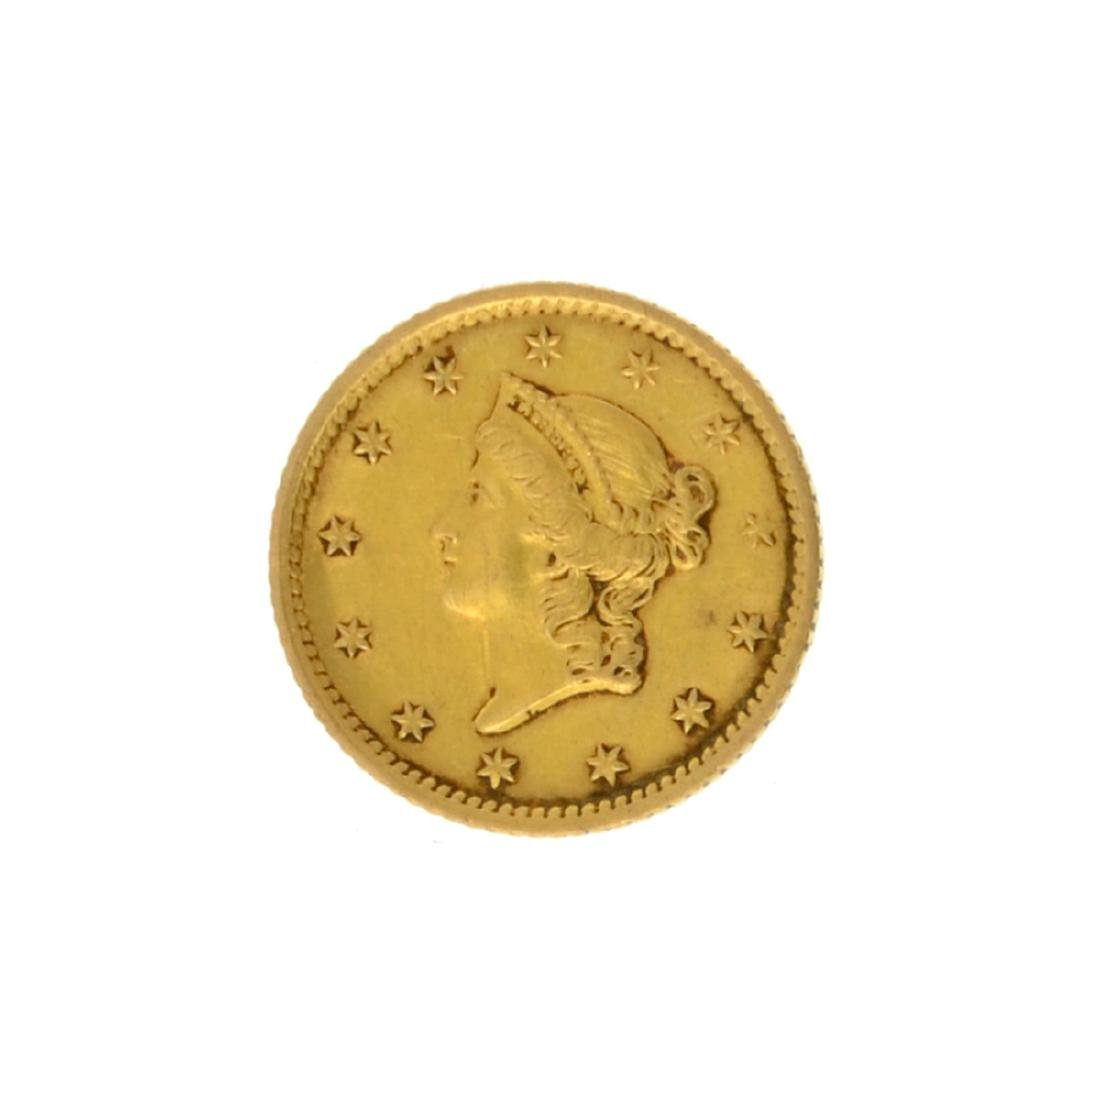 1854 $1 Liberty Head Gold Coin